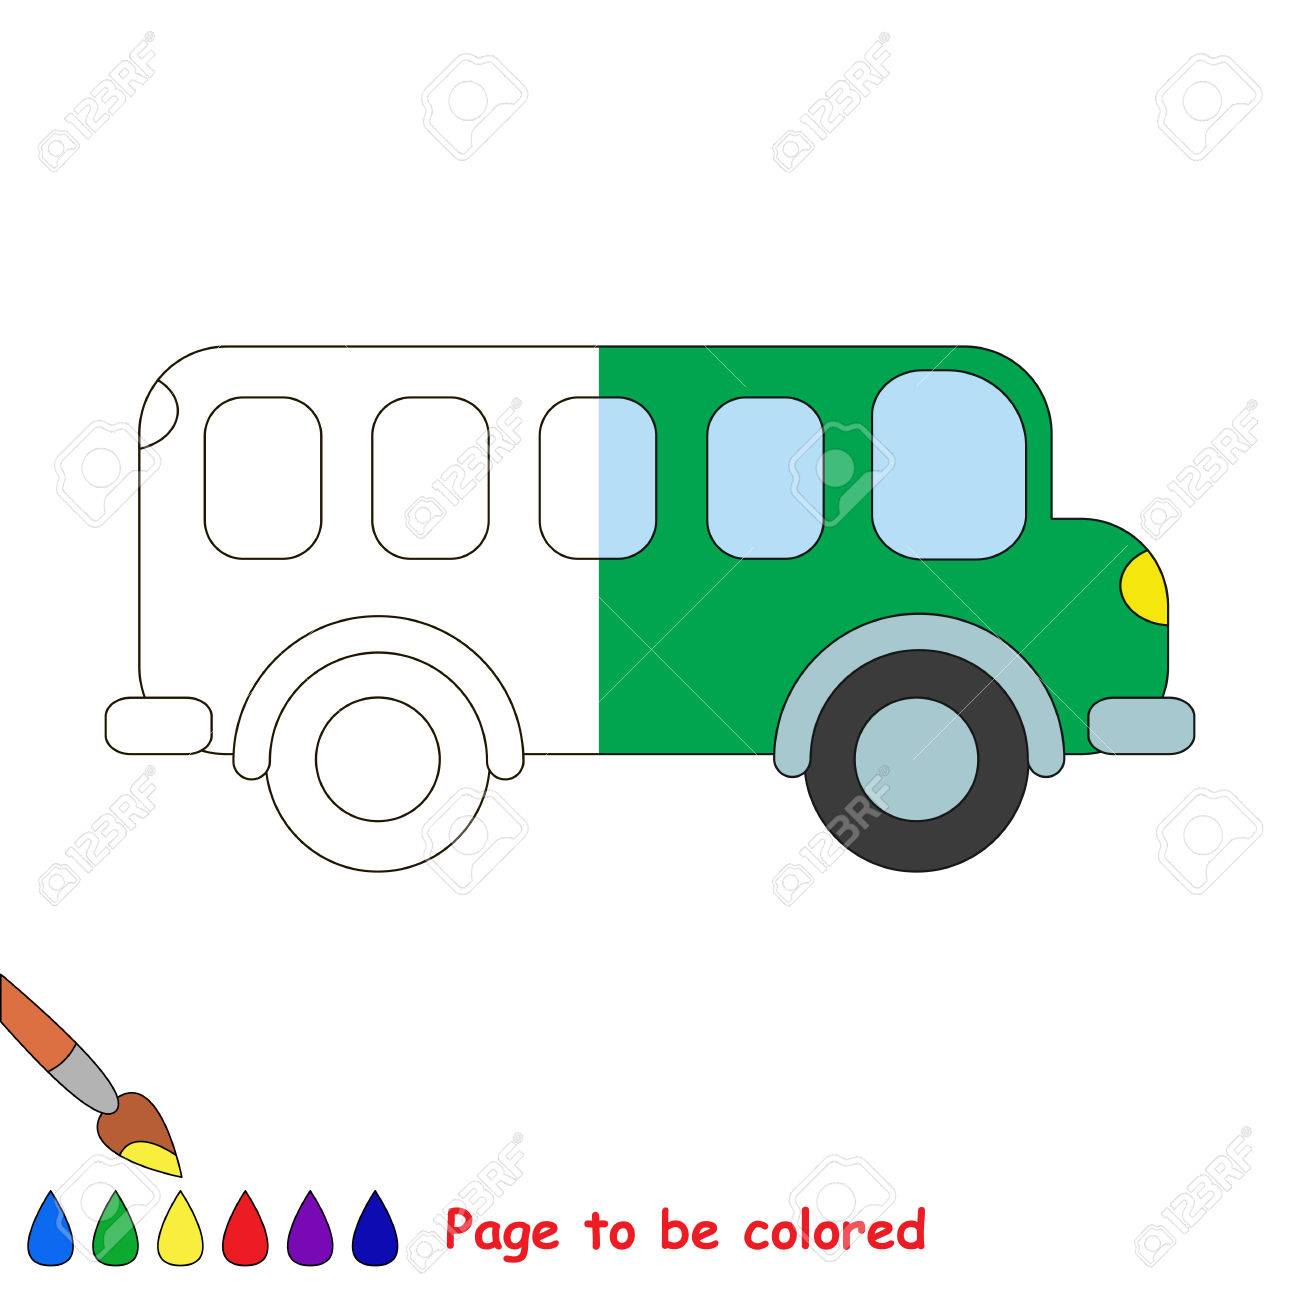 Van To Be Colored, The Coloring Book To Educate Preschool Kids ...